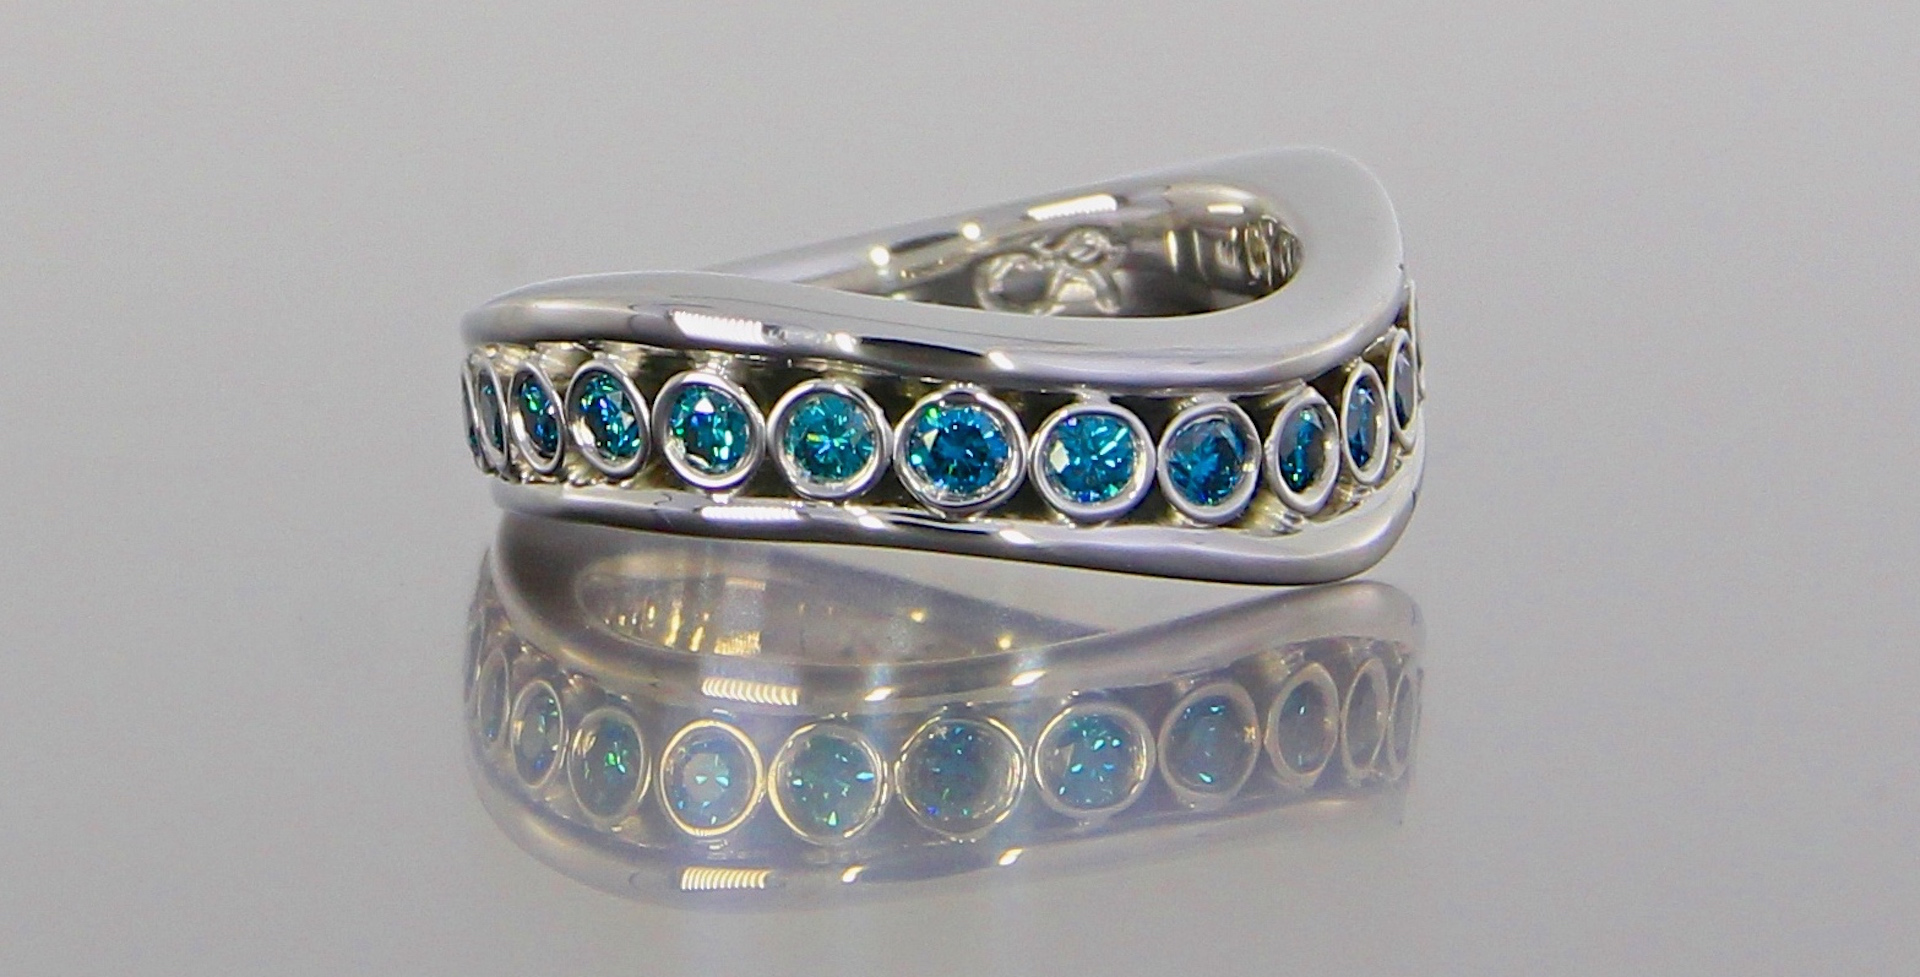 unique-custom-blue-diamond-white-gold-wedding-band-craft-revival-jewelry-store-grand-rapids